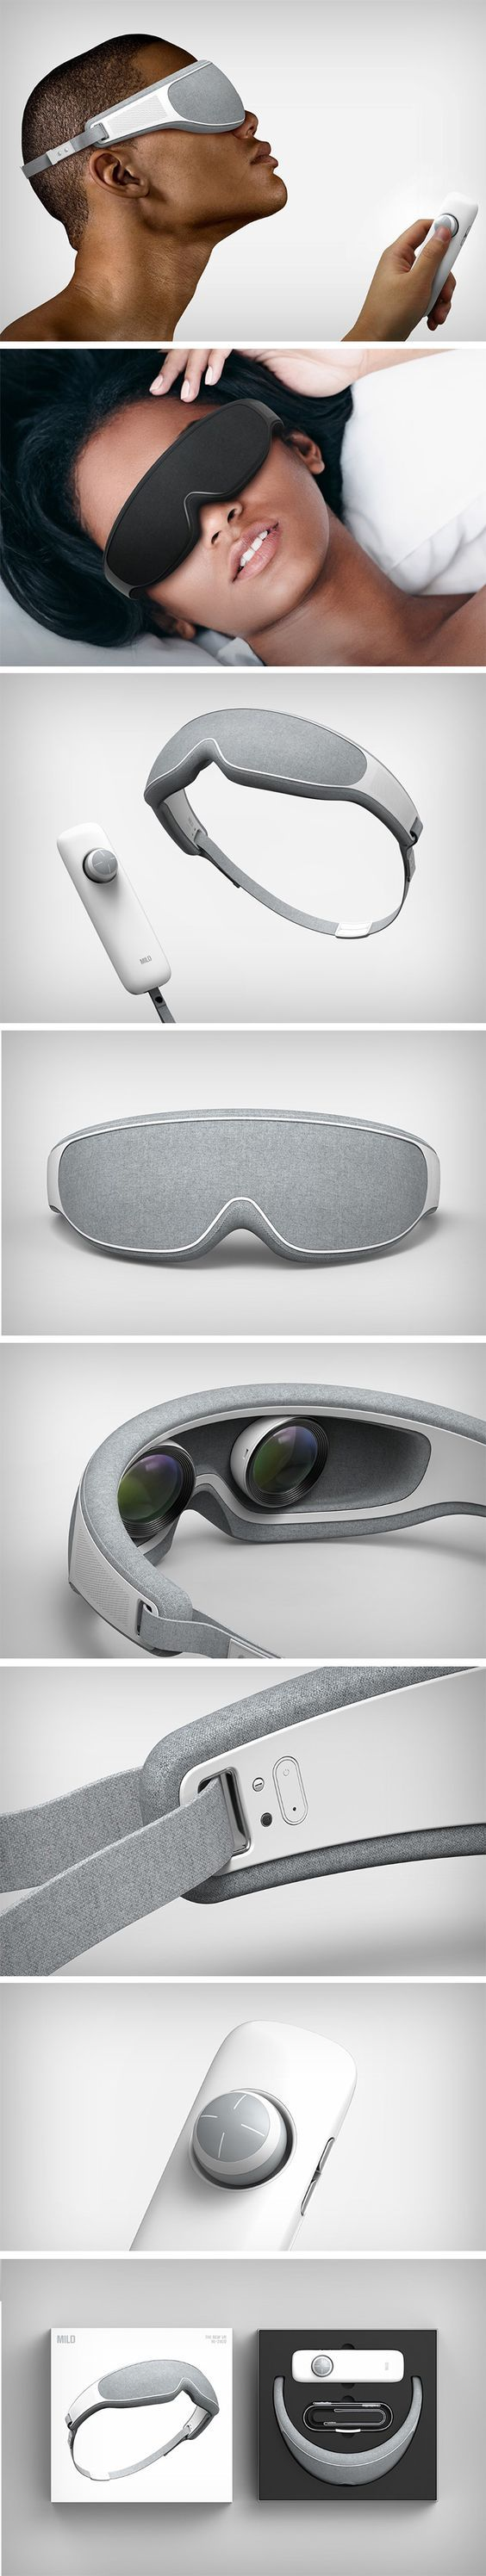 Mild VR headset è un visore VR studiato nel design per apparire bello mentre viene indossato. The Mild comes with a fabric overlay on a plastic body. Mimicking the design of eye masks, they fit comfortably over the eyes while making it look less obvious like you're wearing a multimedia device on your head.  http://virtualmentis.altervista.org/